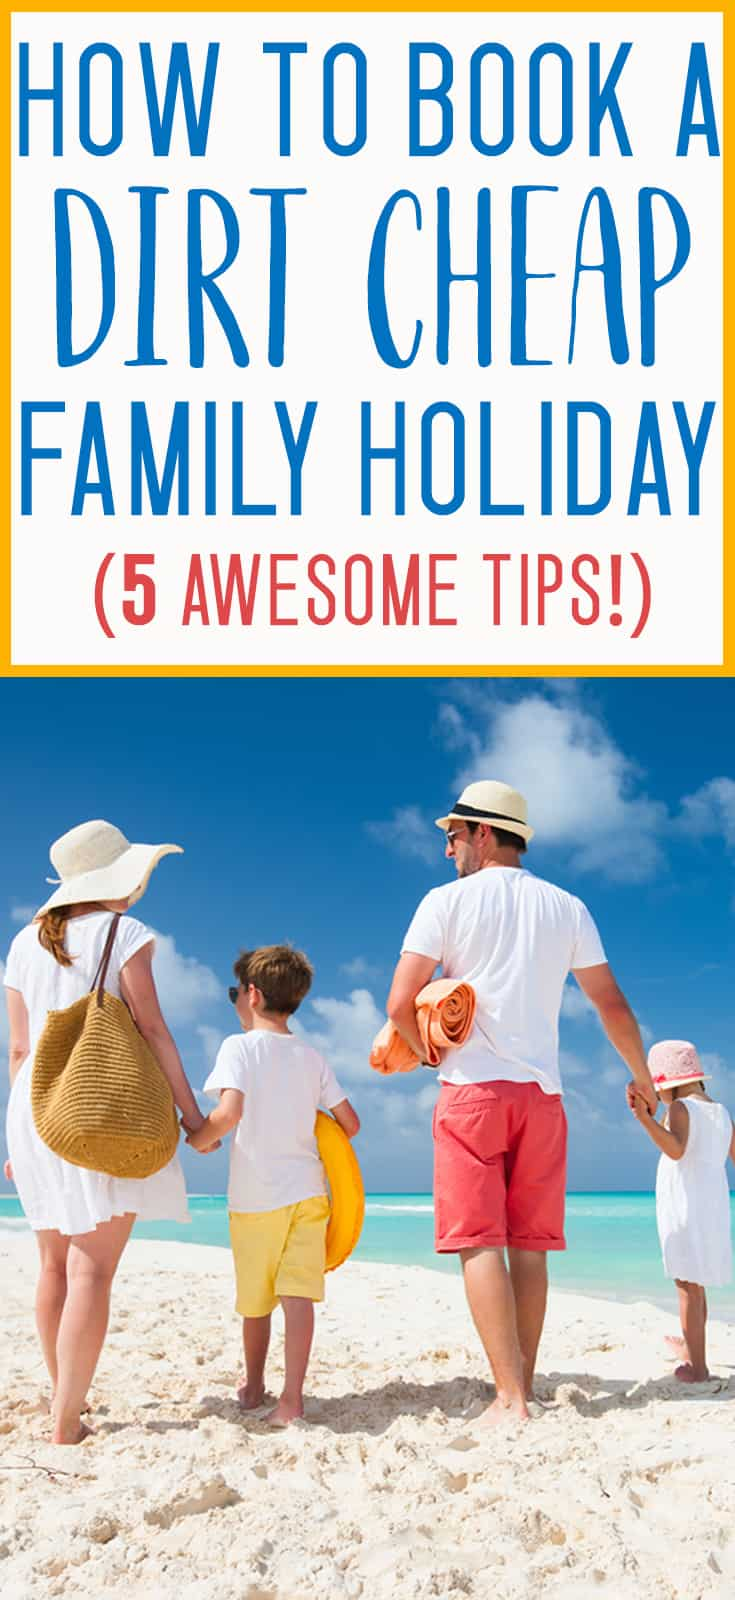 GREAT tips for booking a budget family vacation! Holidays don't have to break the bank - we used these tips to go to hawaii for less than $1500 each!